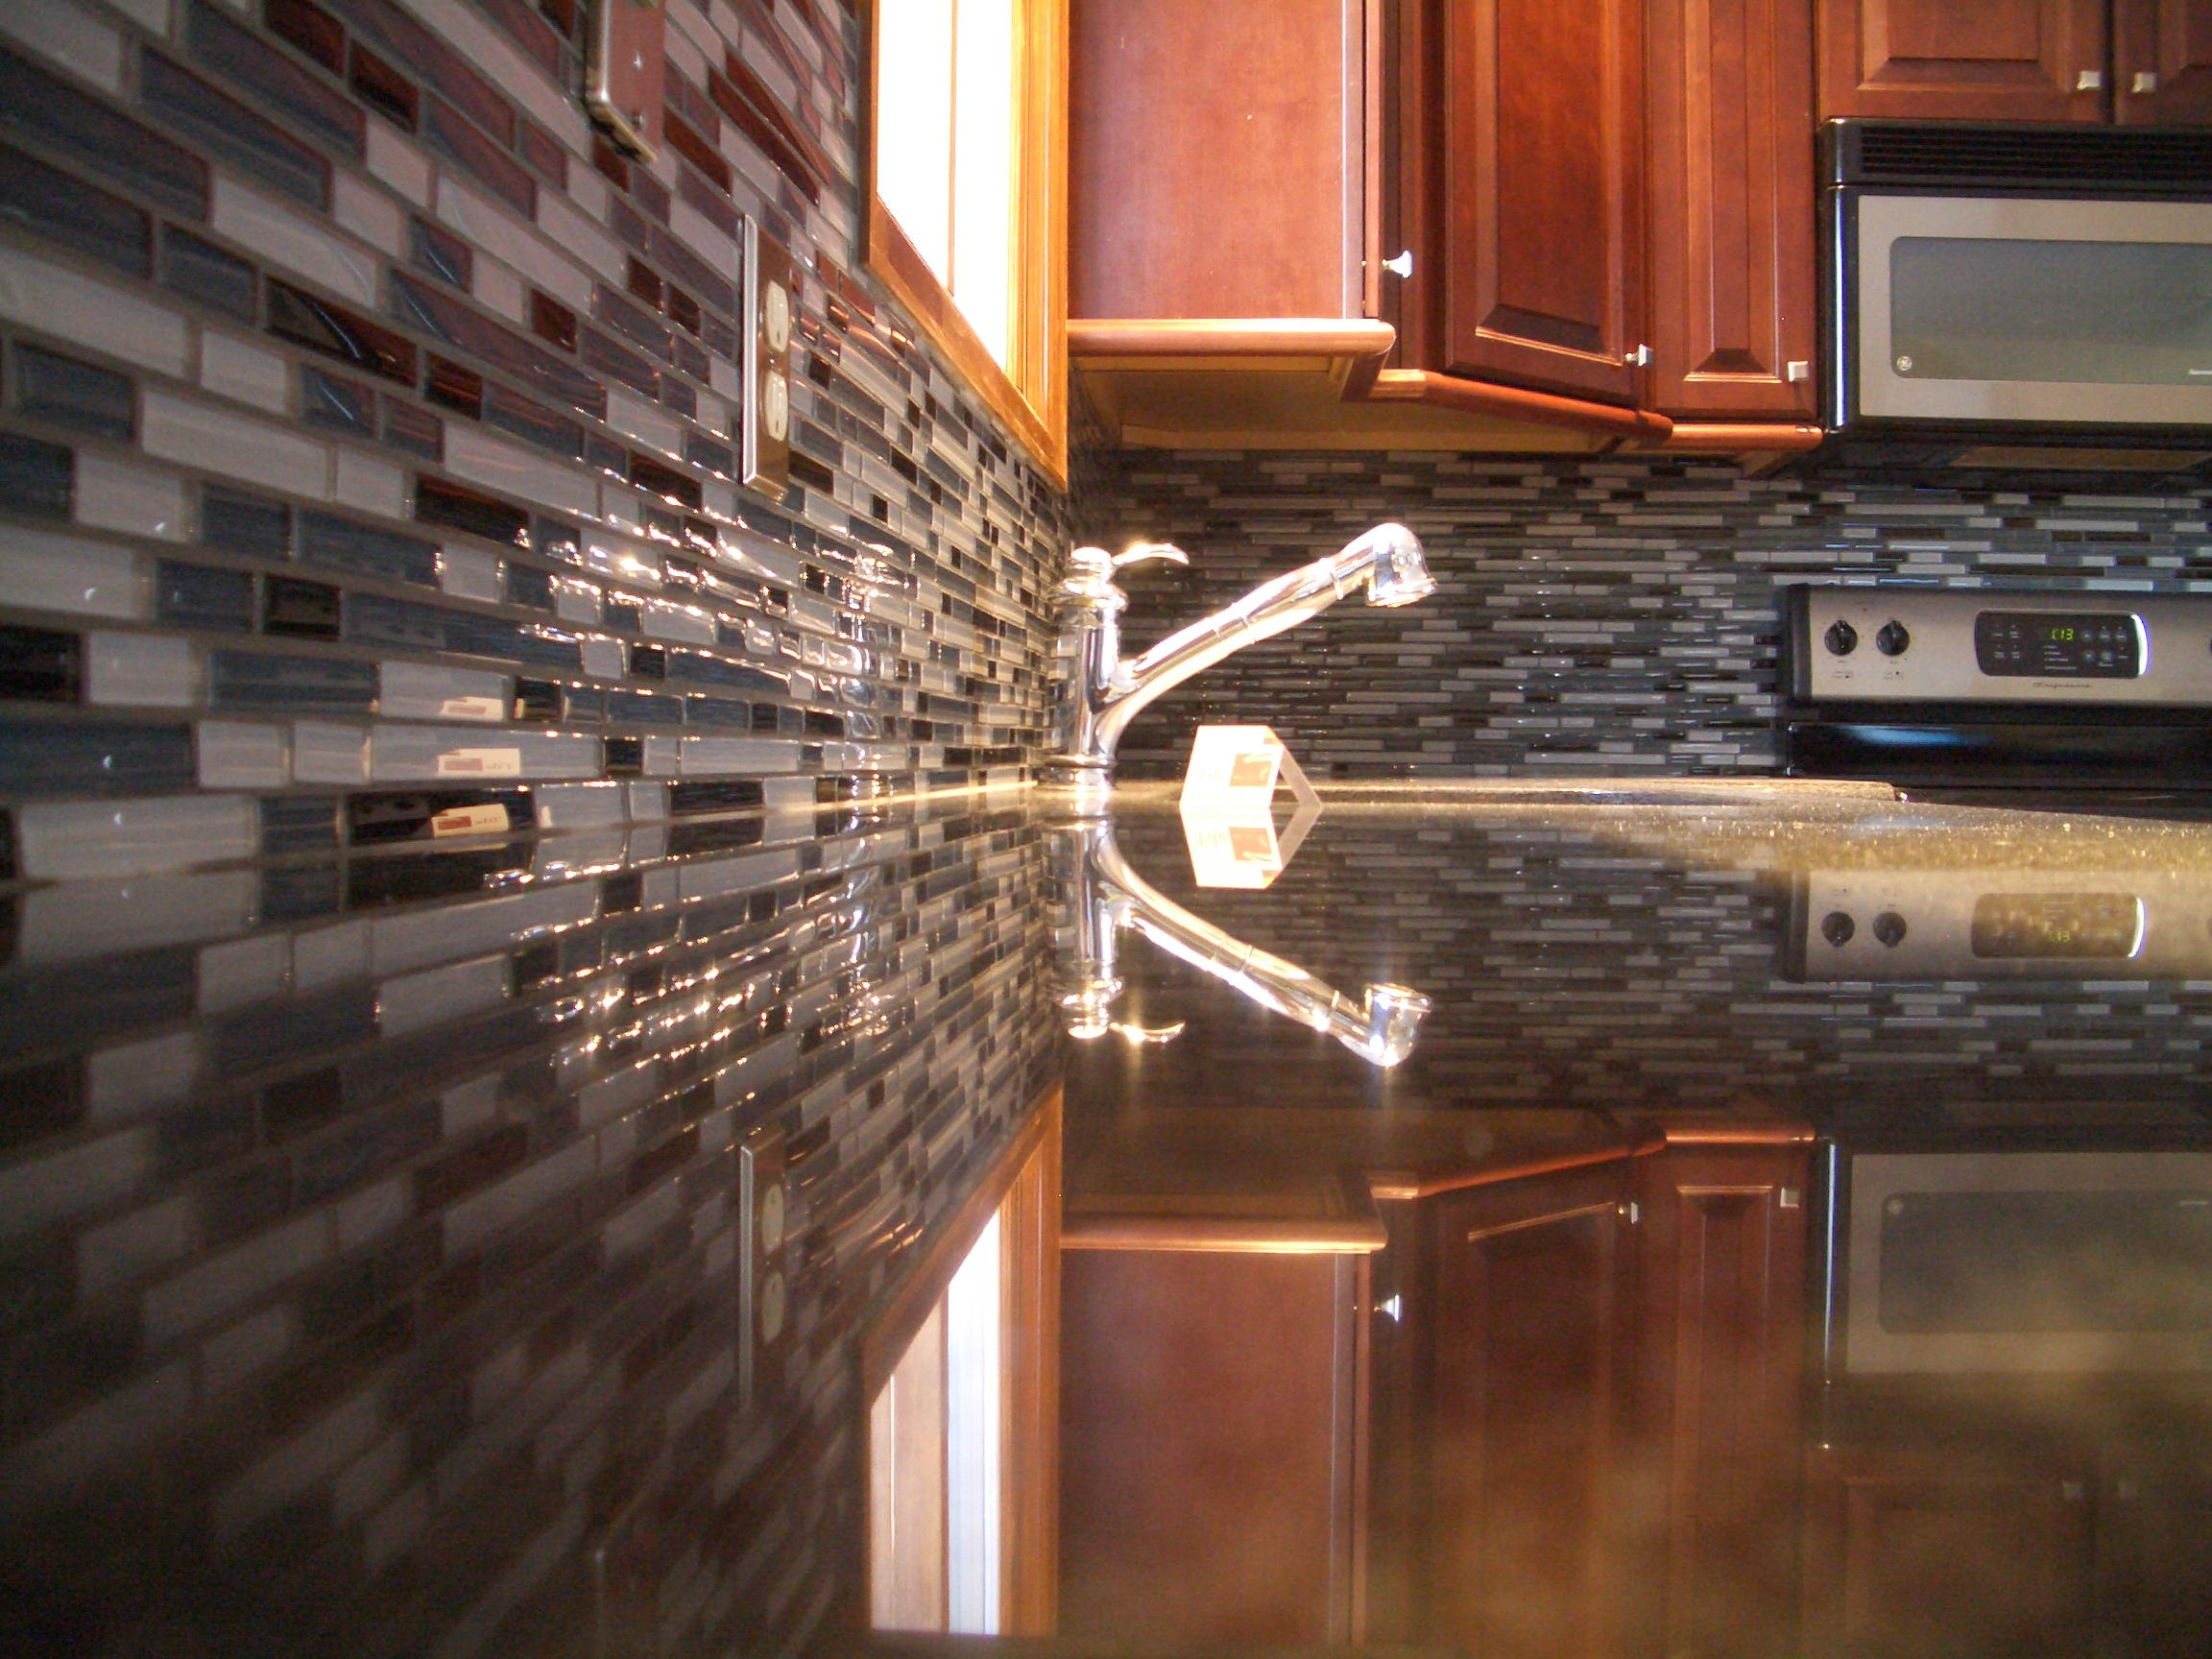 Kitchen Backsplash  Modern Home Exteriors. Floor Plans With Open Kitchen To The Living Room. Warm Neutral Paint Colors For Living Room. Open Window Between Kitchen Living Room. The Living Room Melbourne. Modern Decorating Ideas For Living Rooms. Living Room Color. Throws For Living Room. The Most Popular Paint Color For Living Rooms